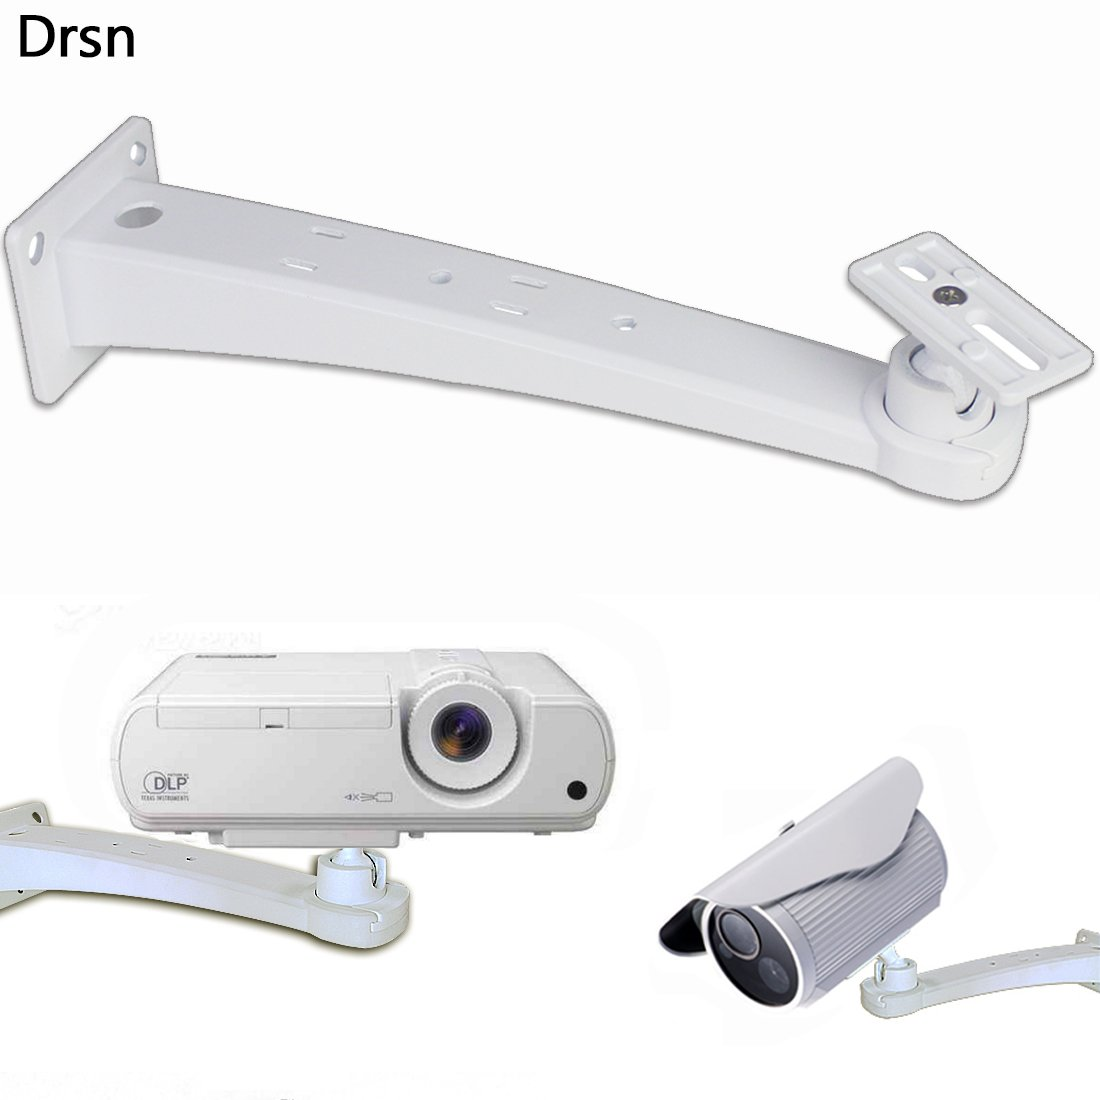 Drsn 12.59 inch/32cm Wall Mount Mini Wall Mount Projector CCTV DVR Camera Mount Projector Hanger with Load 11.02 lbs Mounting Screw Rotation 360° White for Projector Canera Camcorder